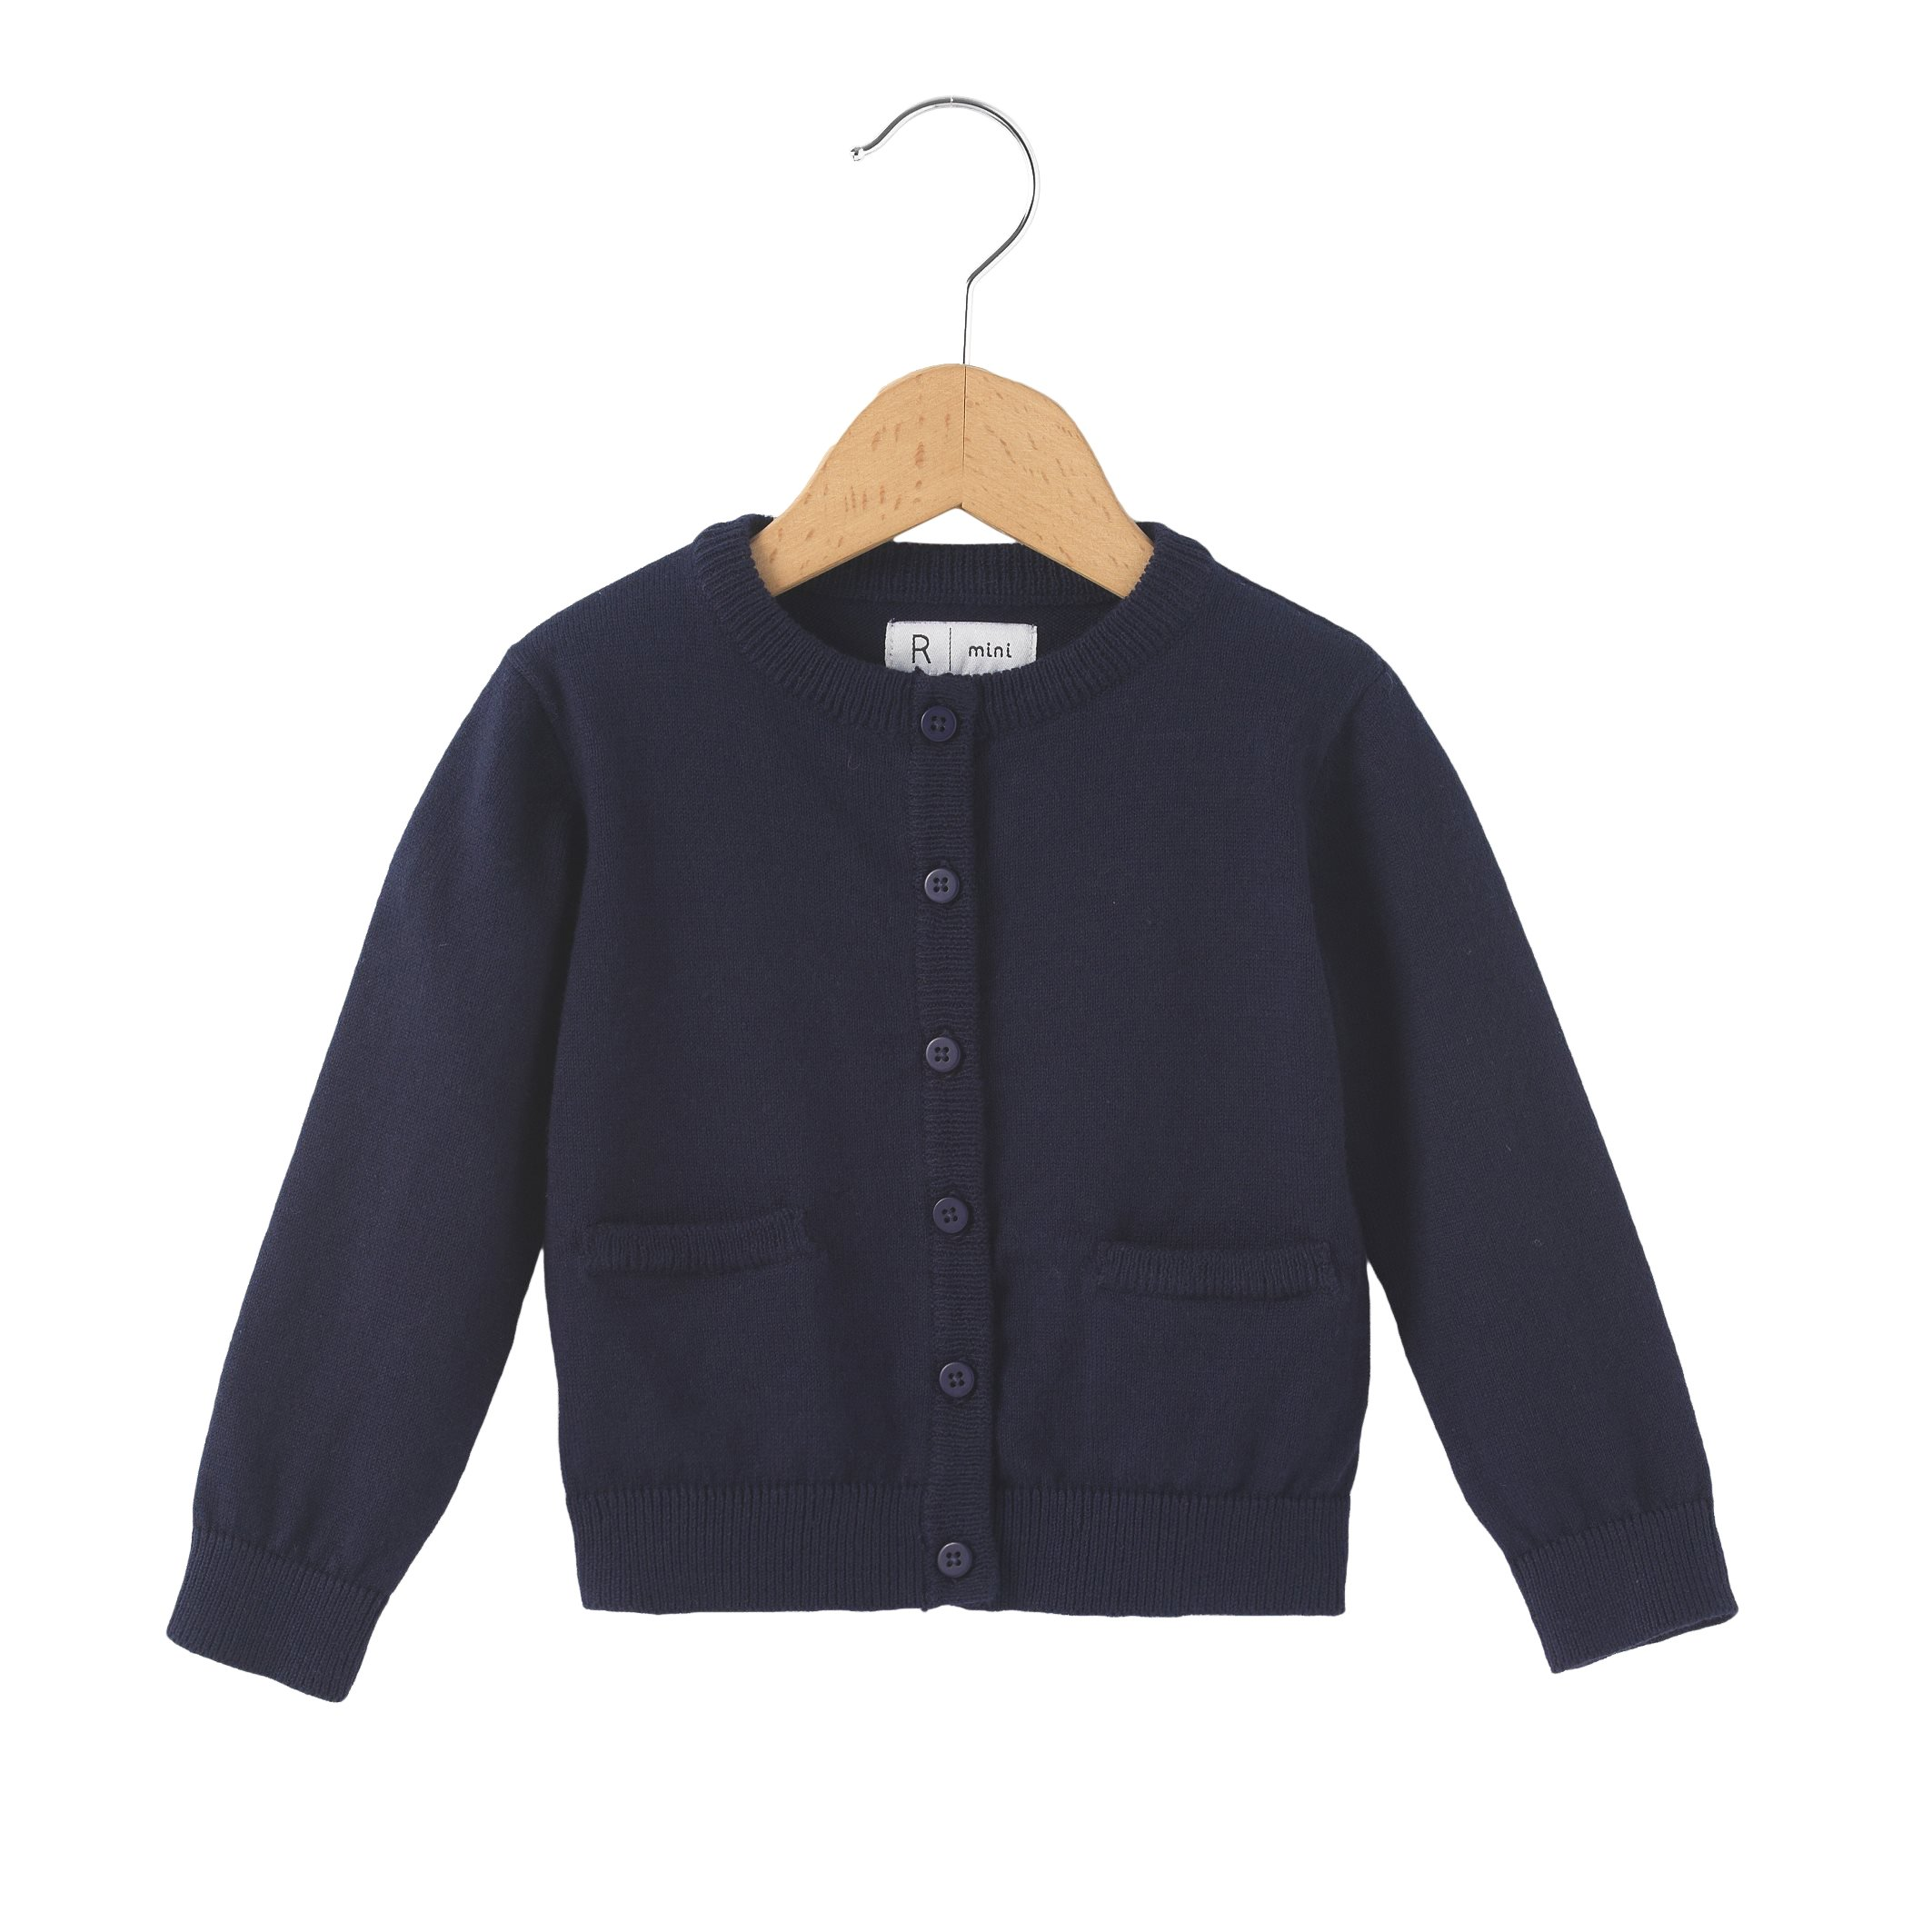 La Redoute Collections Big Girls Fine Gauge Knit Cardigan, 1 Month-3 Years Blue Size 3 Months - 23 In.